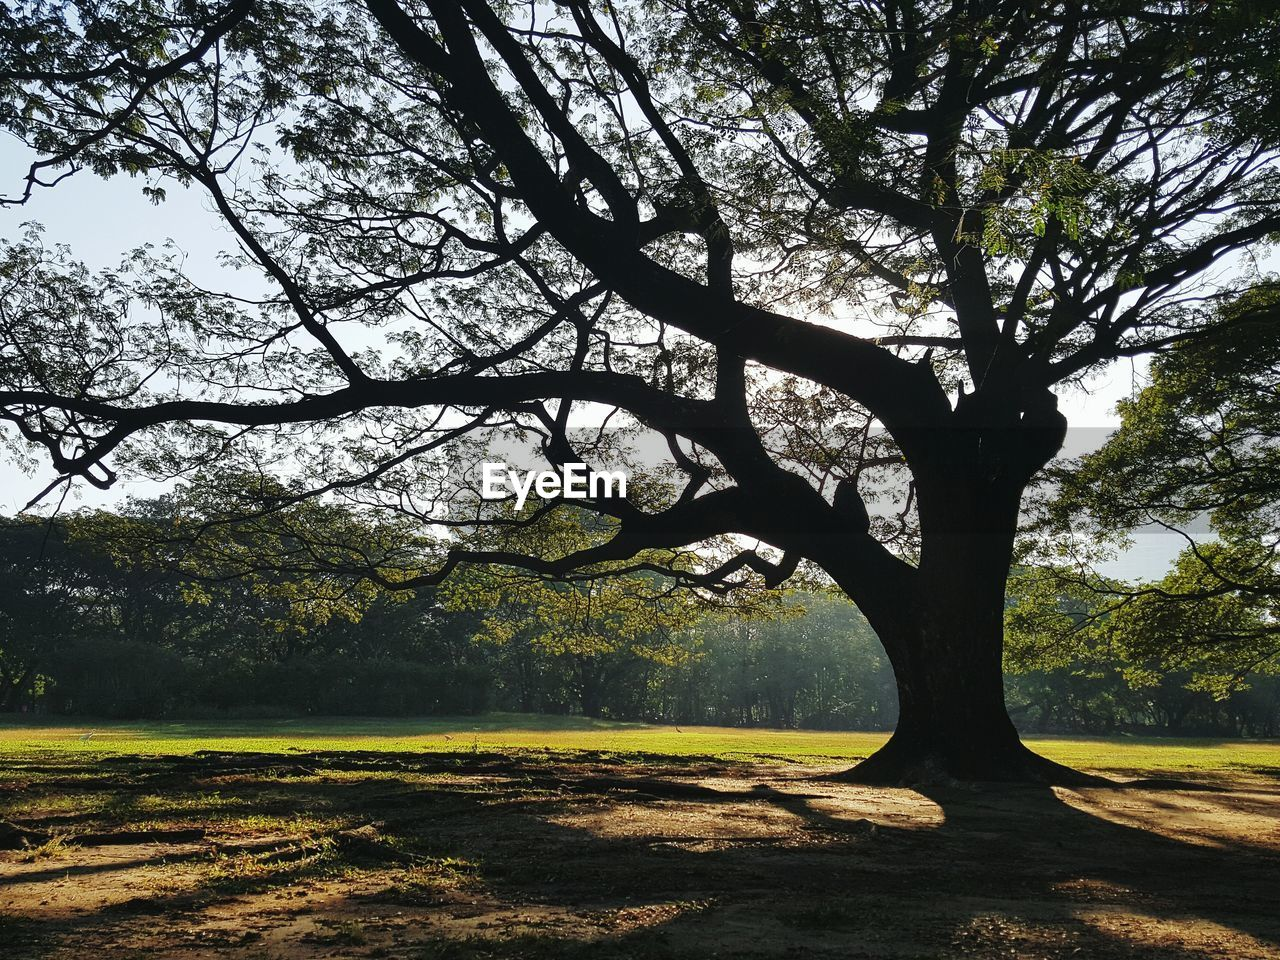 tree, tranquility, growth, nature, branch, landscape, no people, beauty in nature, outdoors, day, scenics, grass, sky